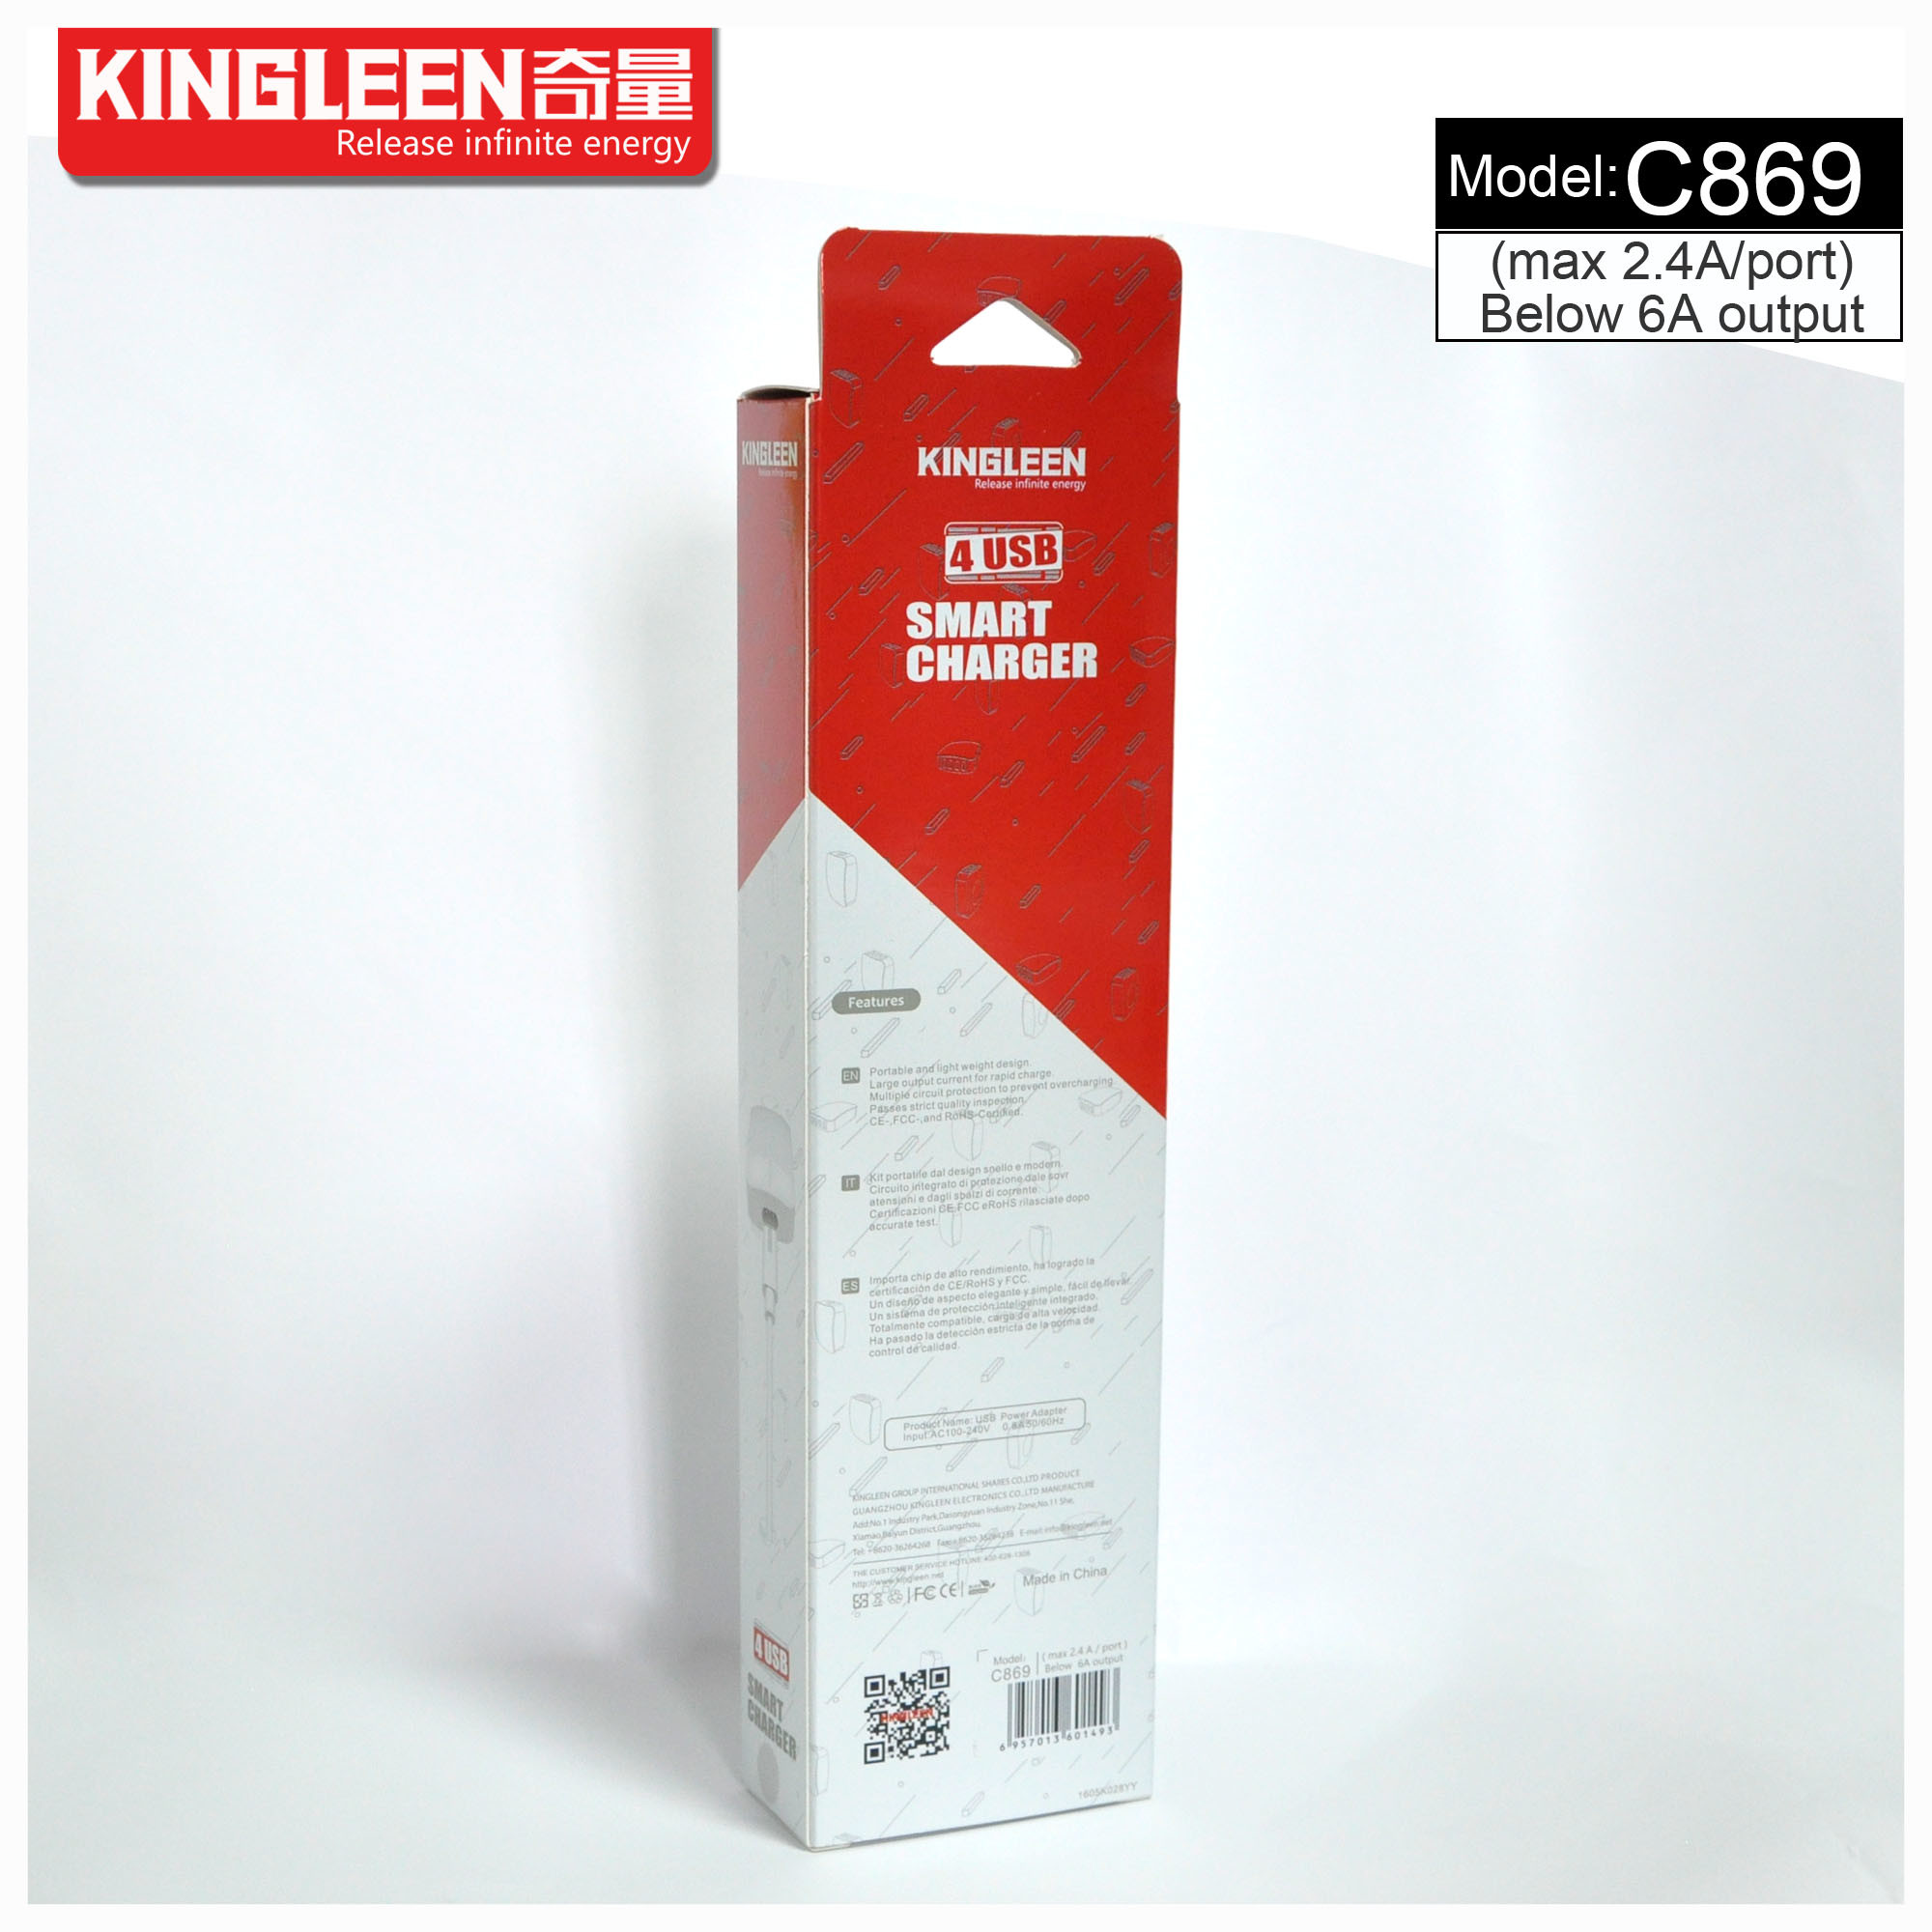 Kingleen C869 Four USB Intelligent Charger 5V-6A Produced by The Original Factory Export to Europe